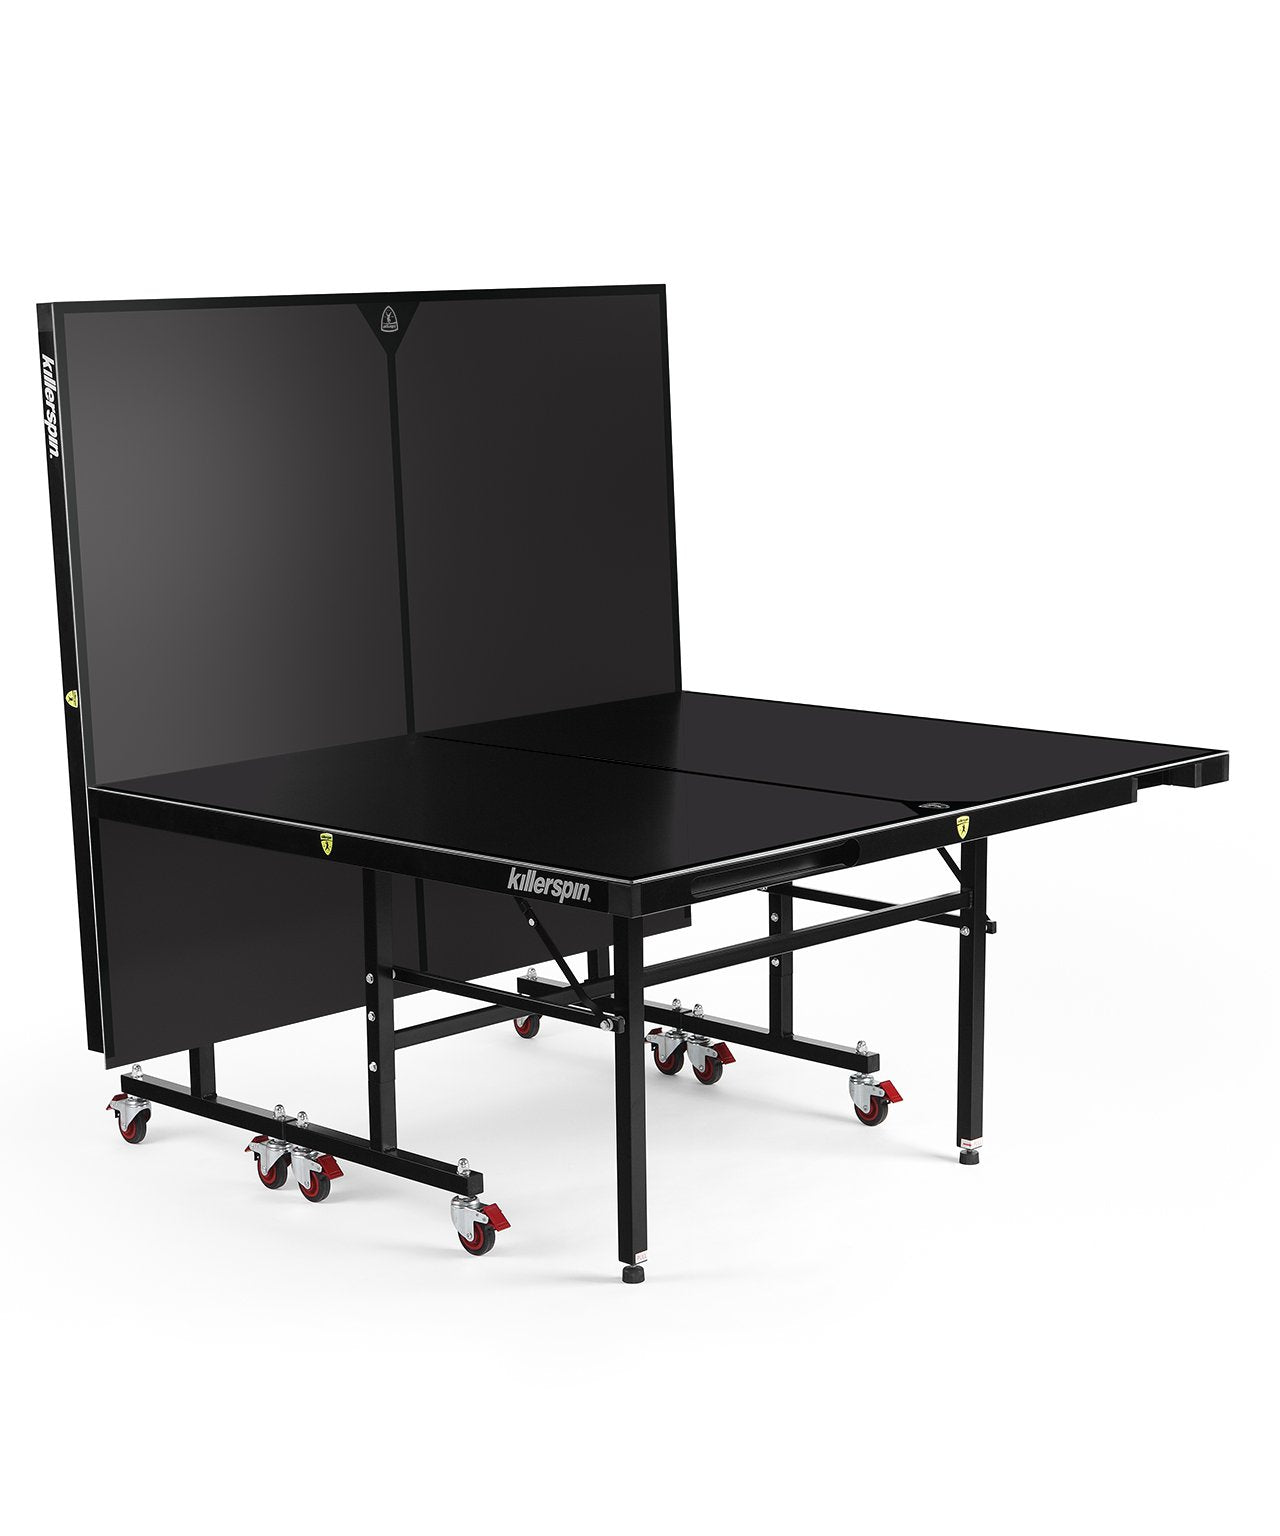 Outdoor Ping Pong Table with Storage Pockets - MyT10 BlackStorm by Killerspin - Gym Gear Direct